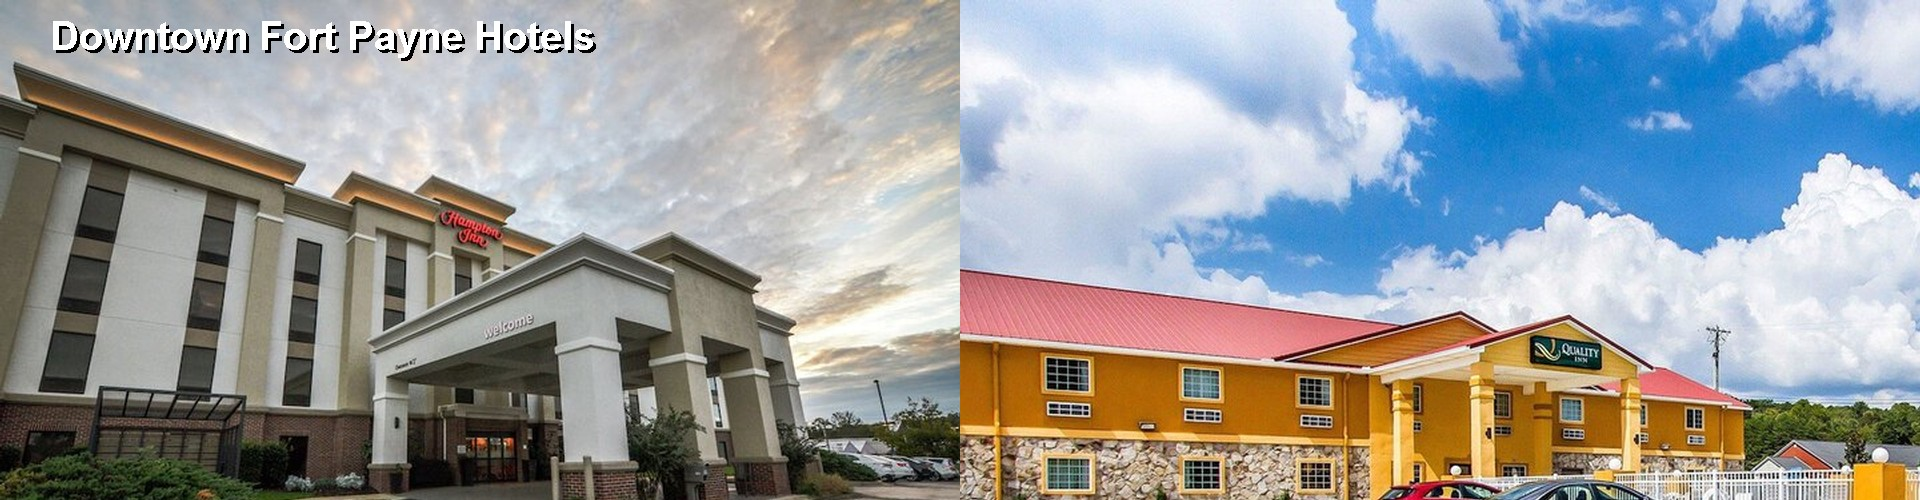 5 Best Hotels near Downtown Fort Payne